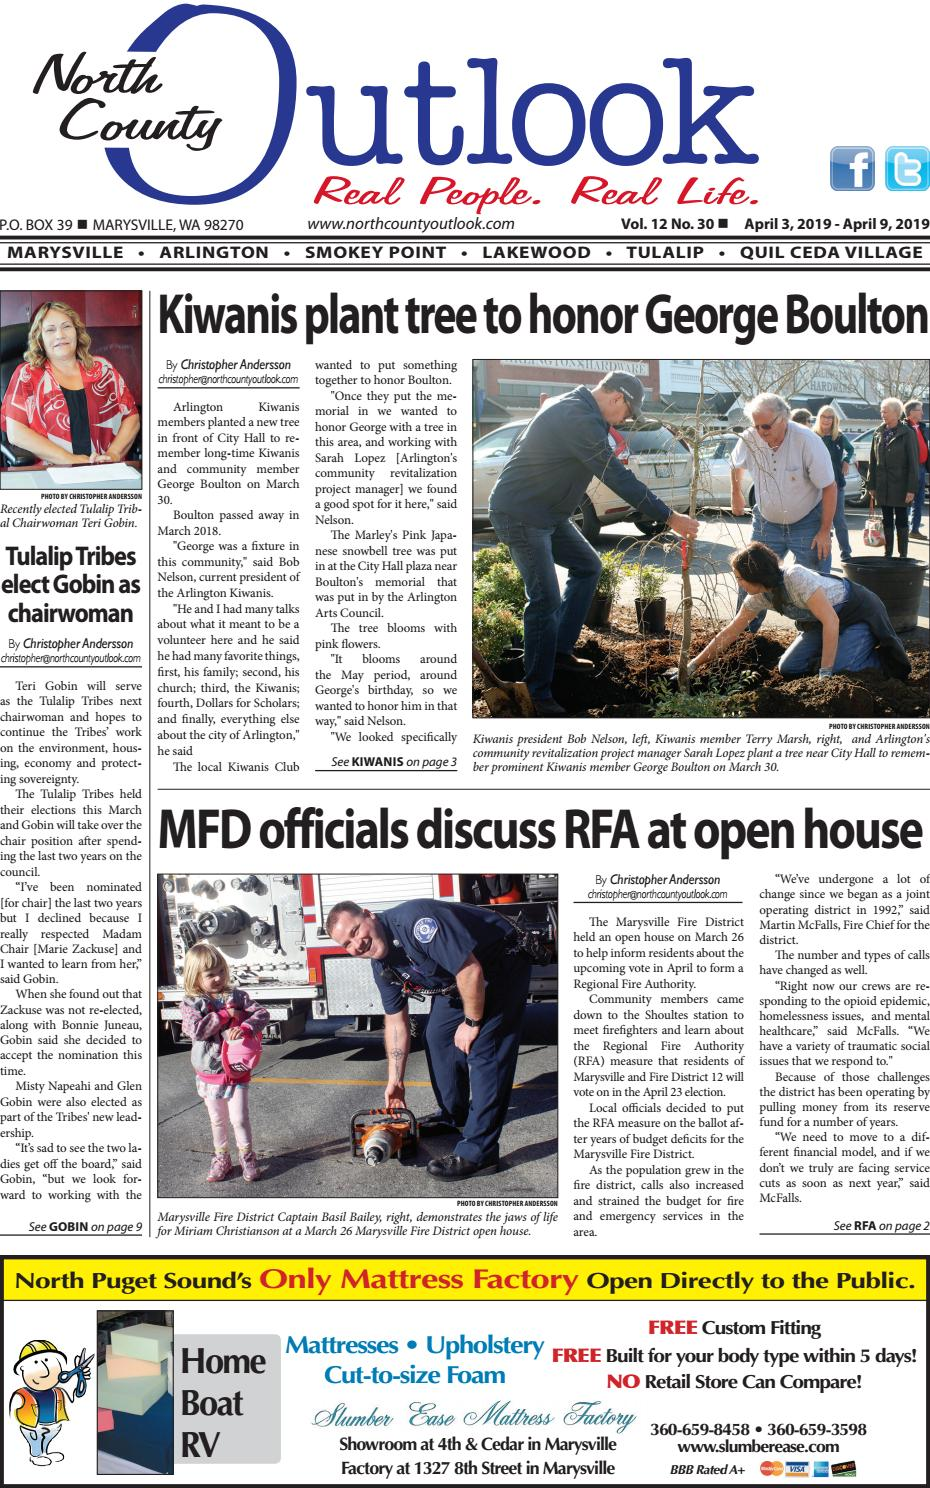 April 3, 2019 North County Outlook by The North County